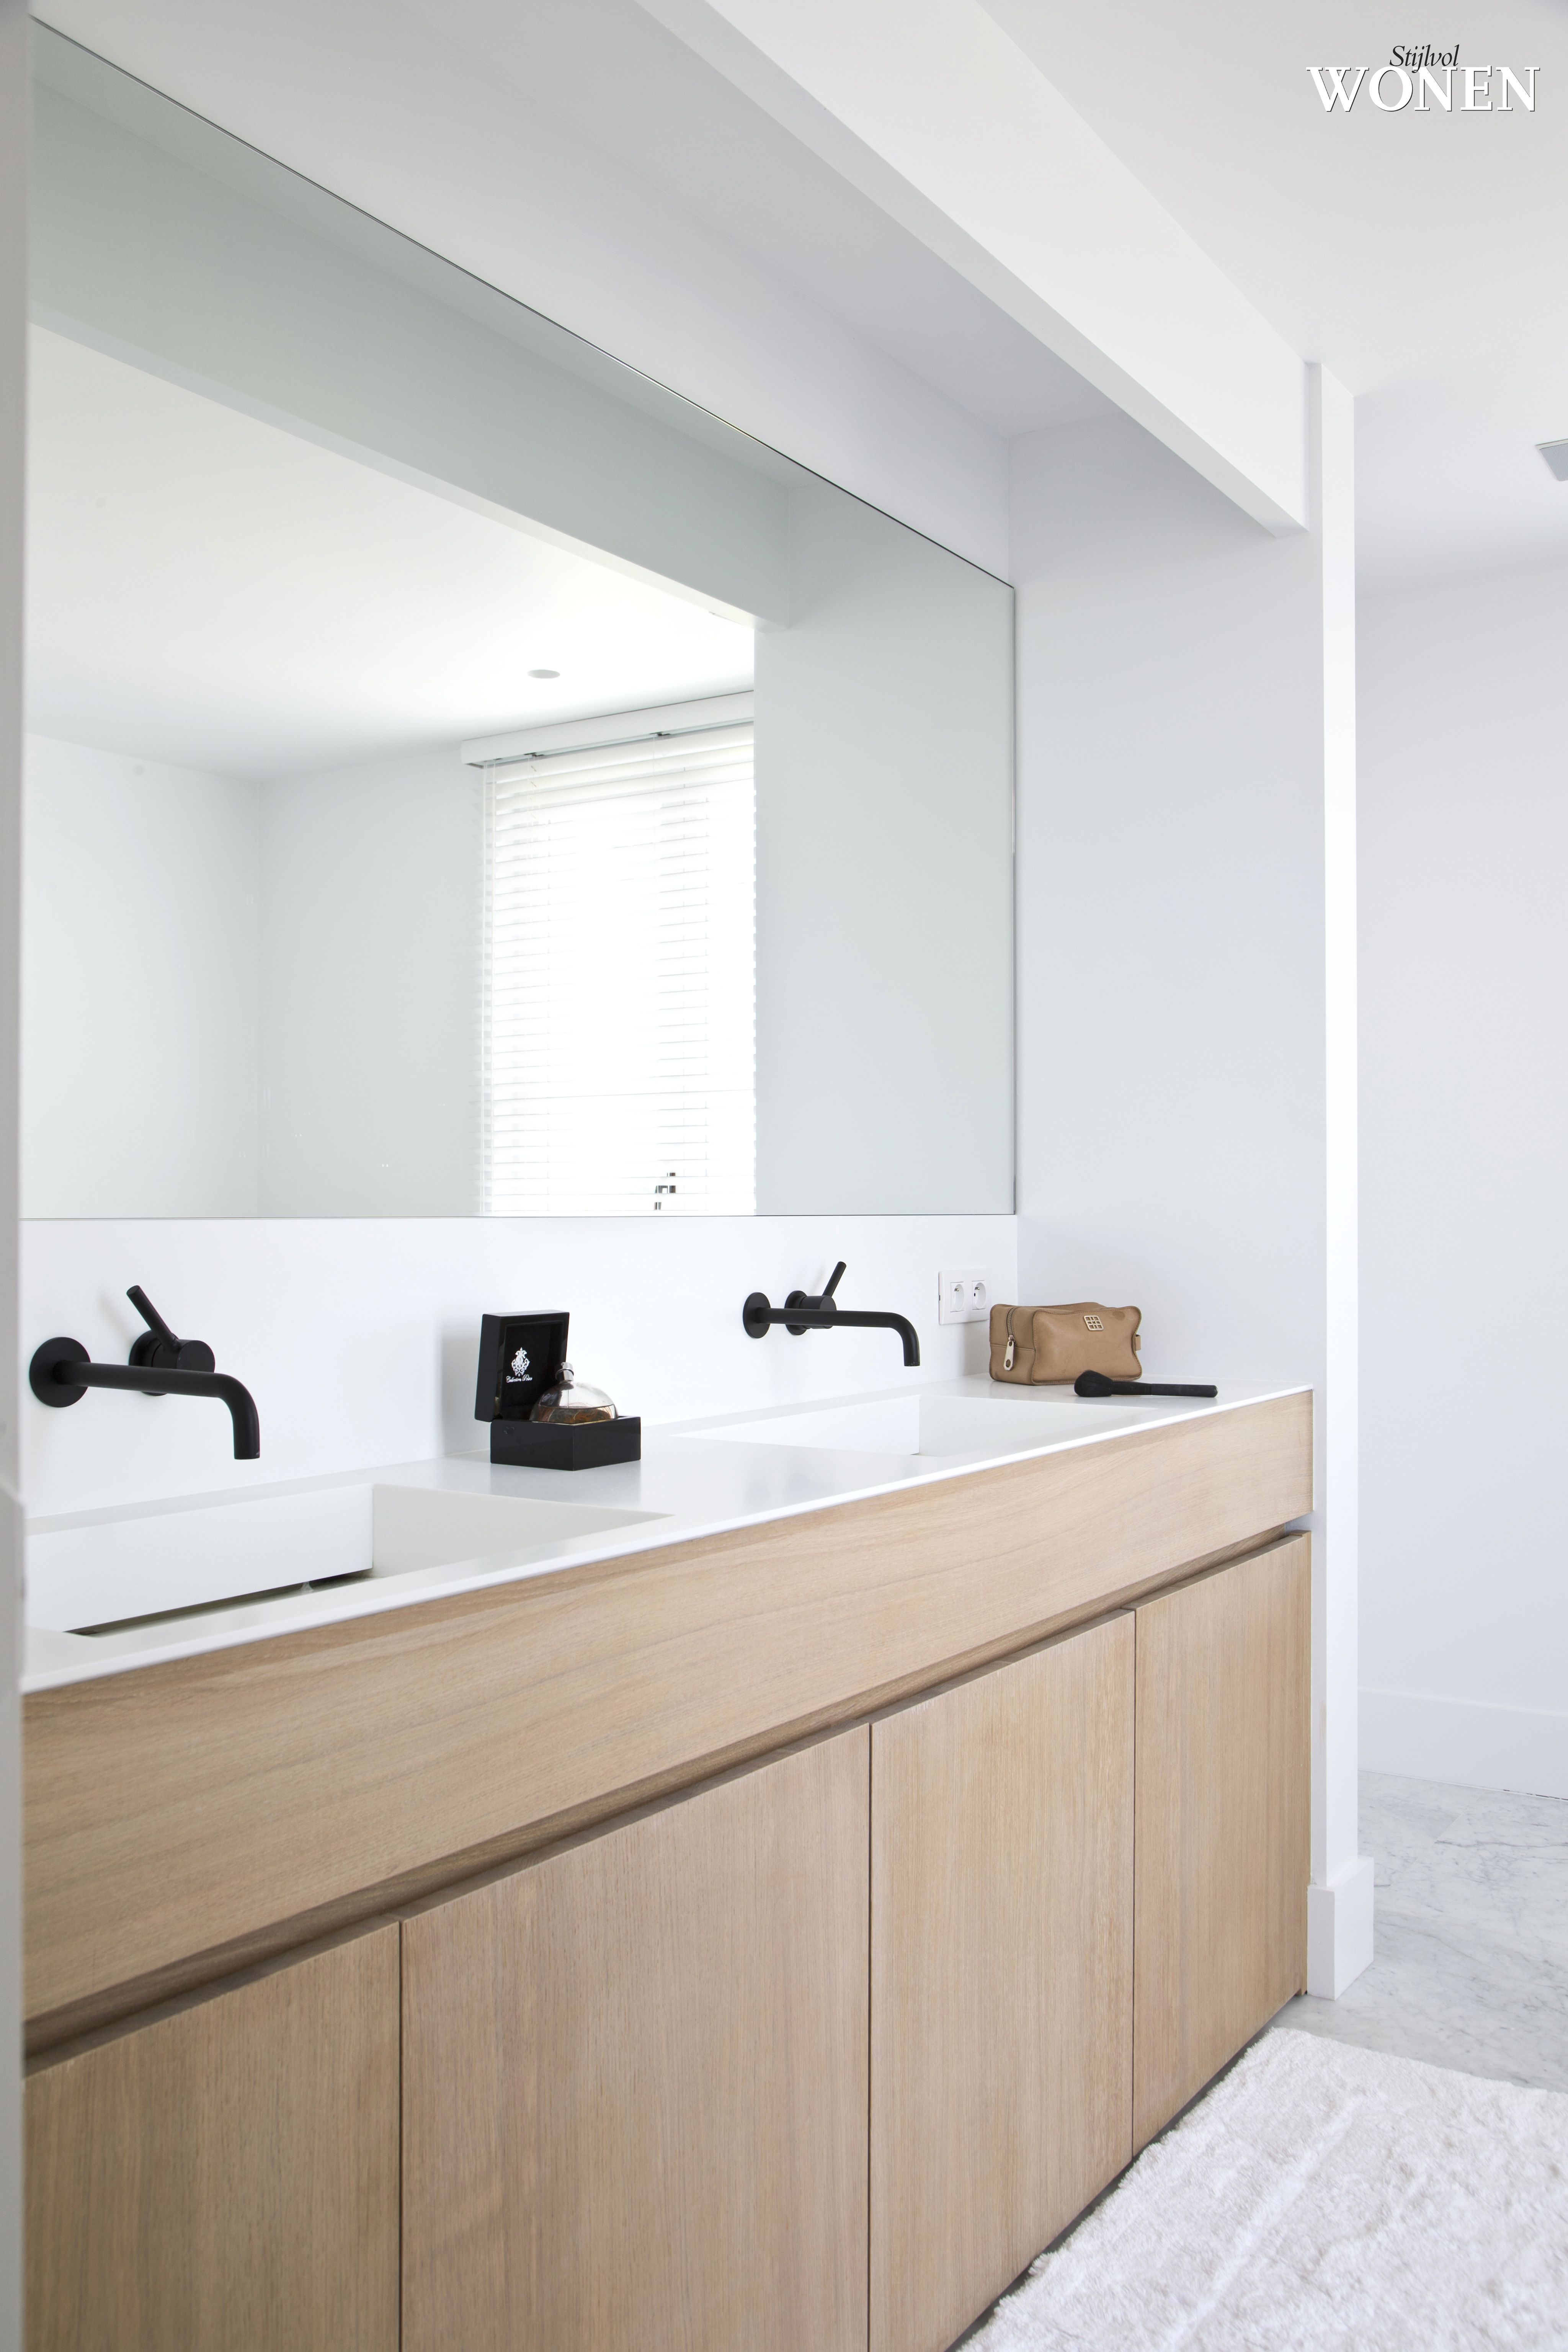 Bathroom in wood and white by Oscar V   Gillies  Pinterest